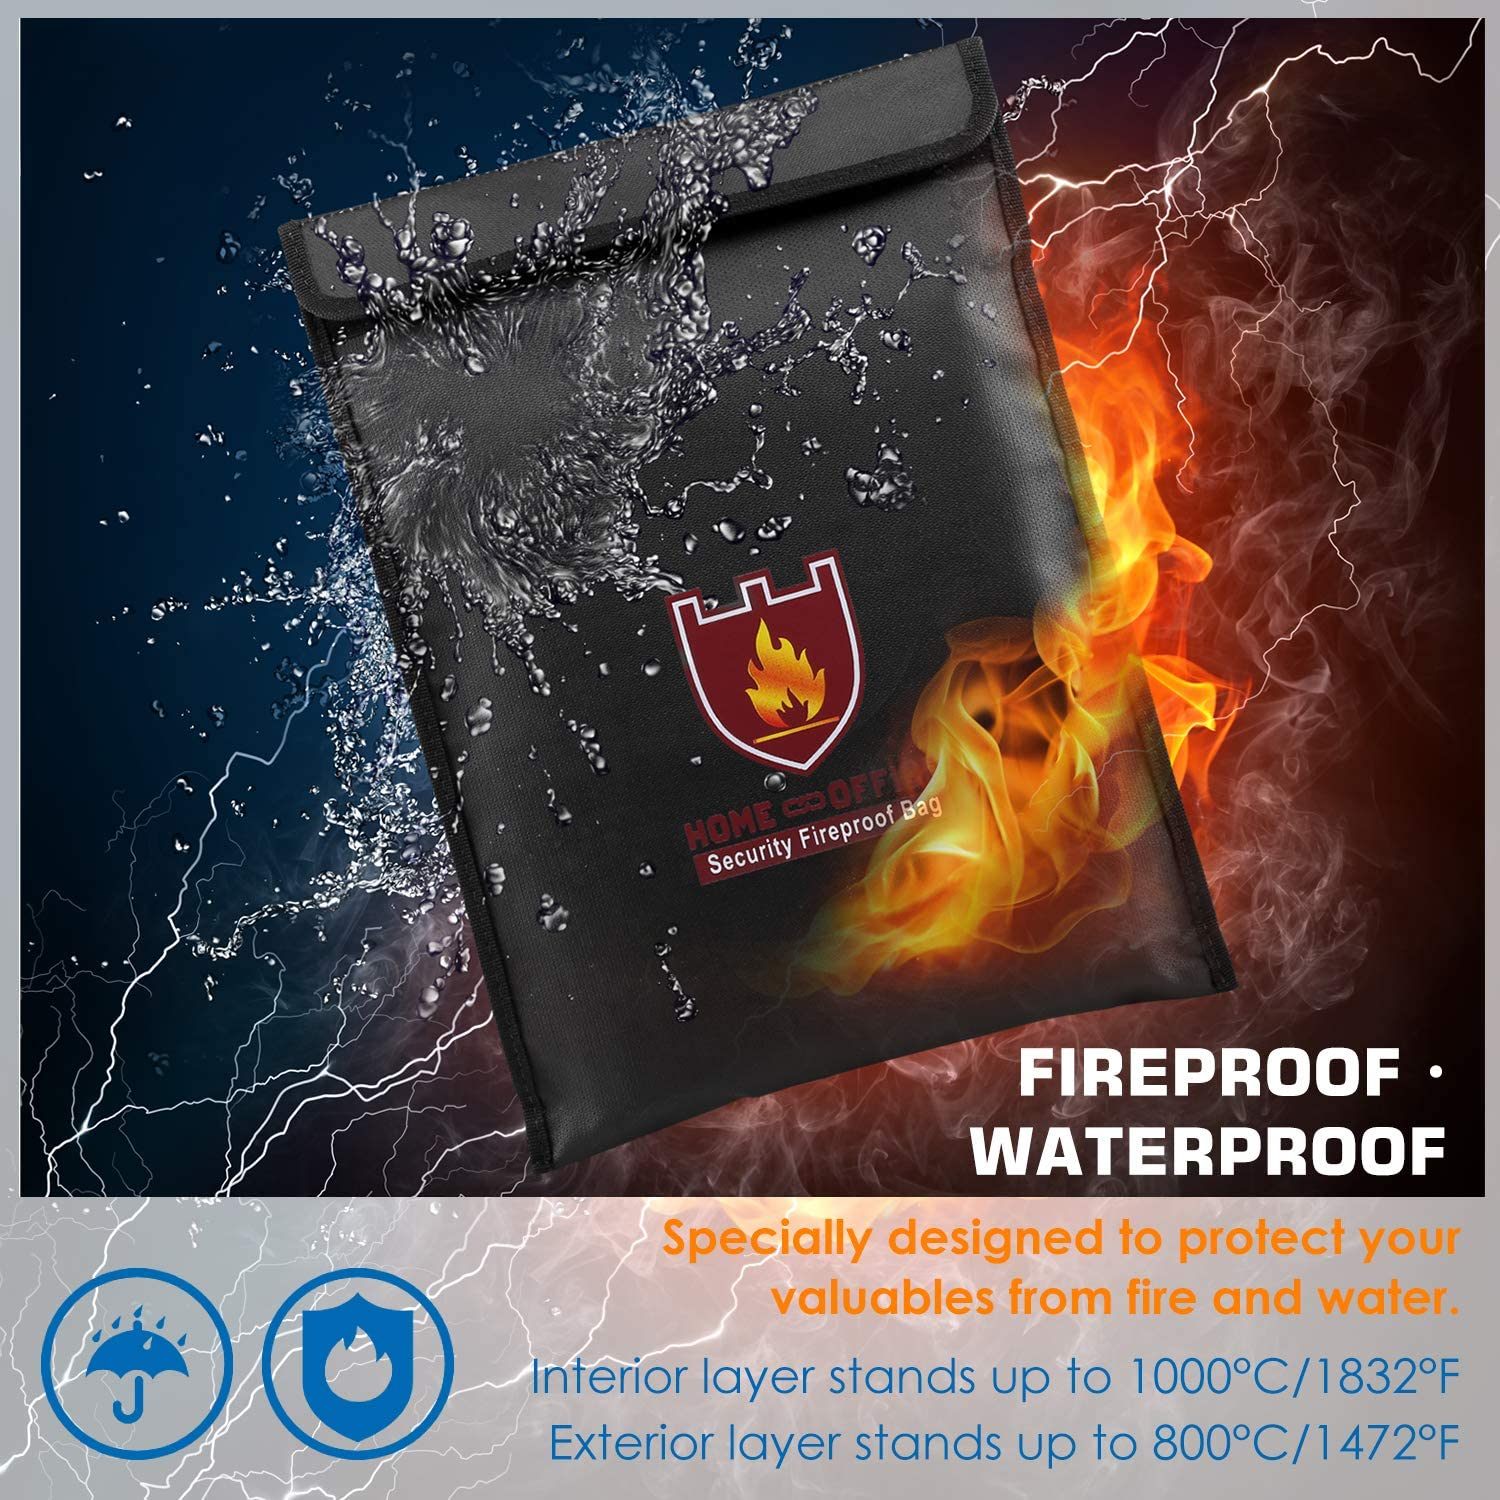 Documents Zipper Closure for Maximum Protection Money /& Envelope Waterproof Holder Jewelry Schwarz Protect Your Valuables 2 Pack Cash MoKo Fireproof Document Bag